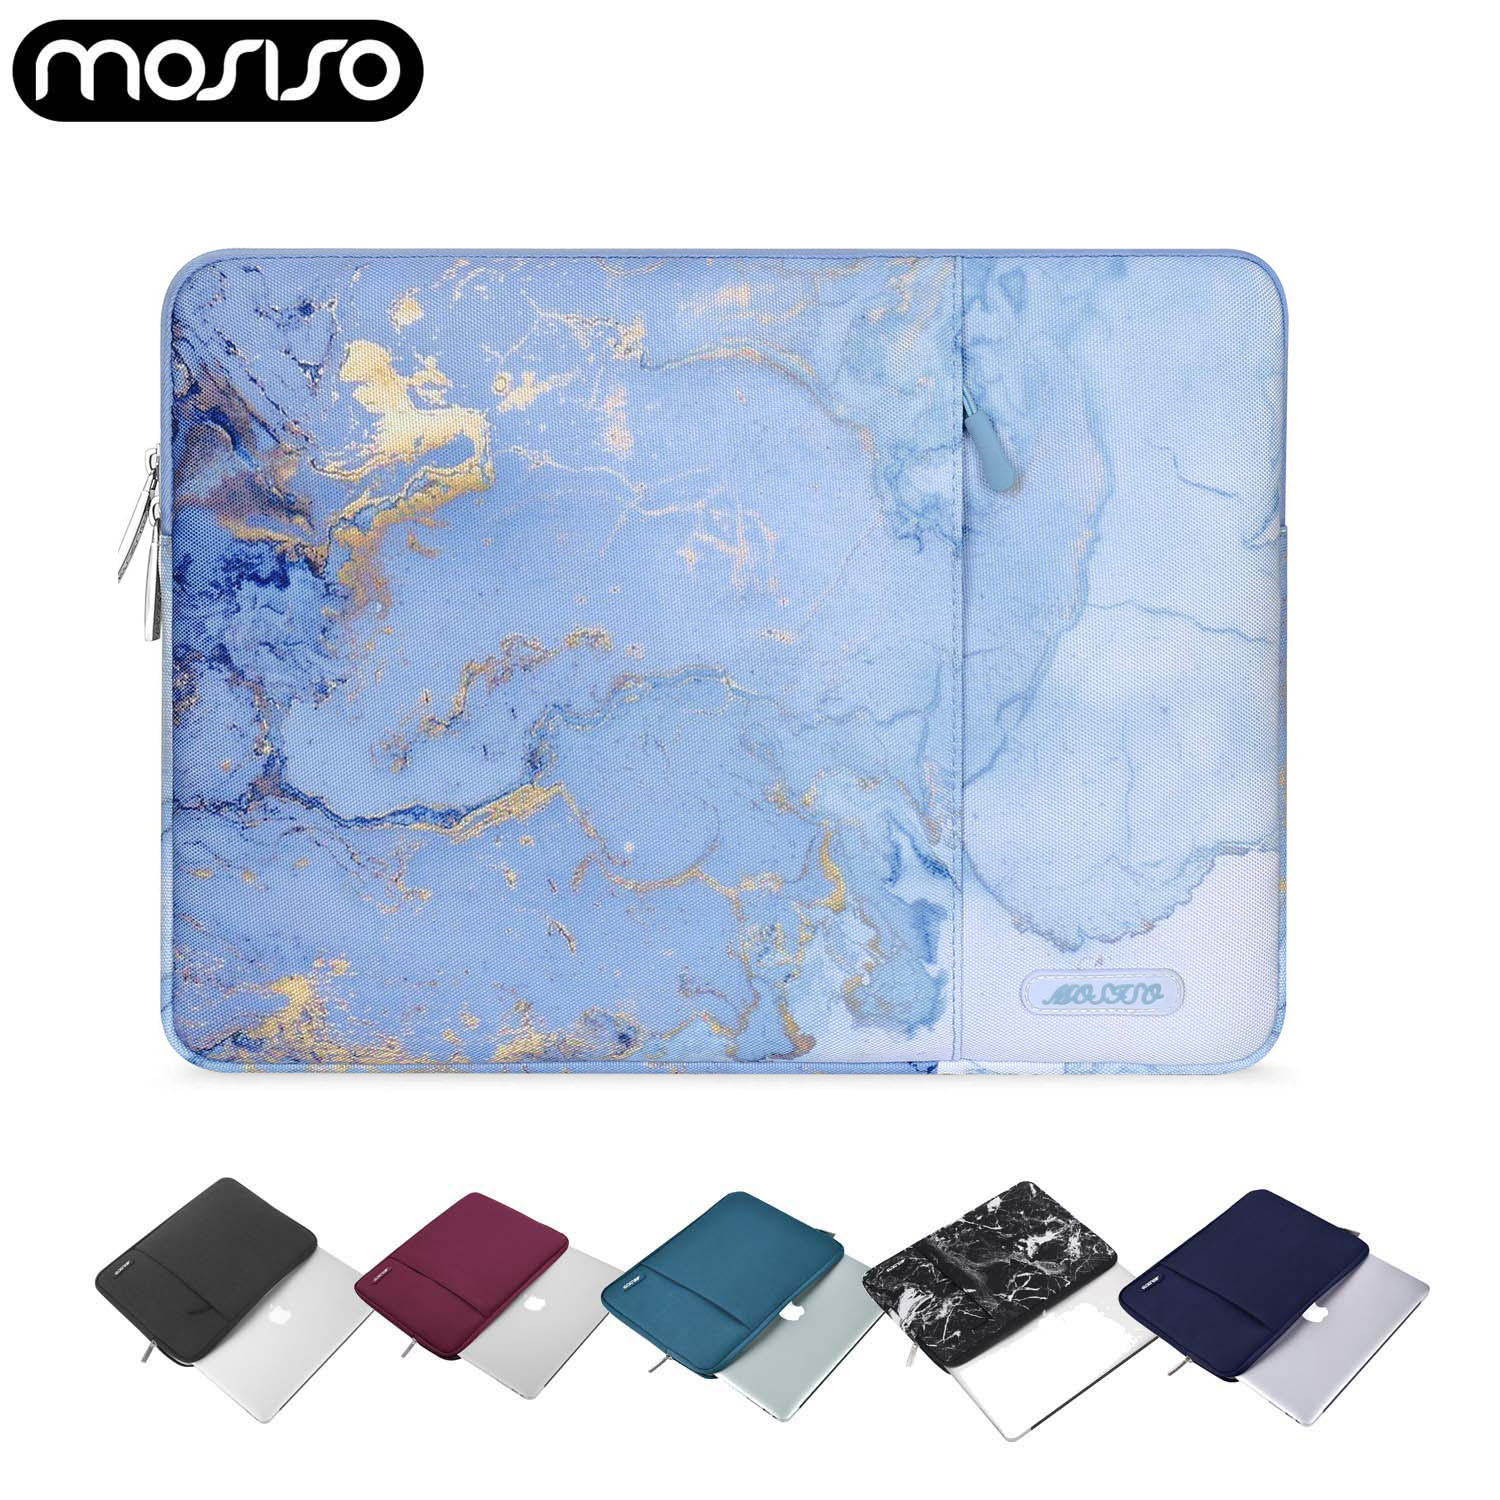 MOSISO Laptop Sleeve Bag Case For Macbook Air Pro 13 15 16 Touch Bar Notebook Sleeve Cover 11 12 13 14 15inch For Dell/HP/Acer